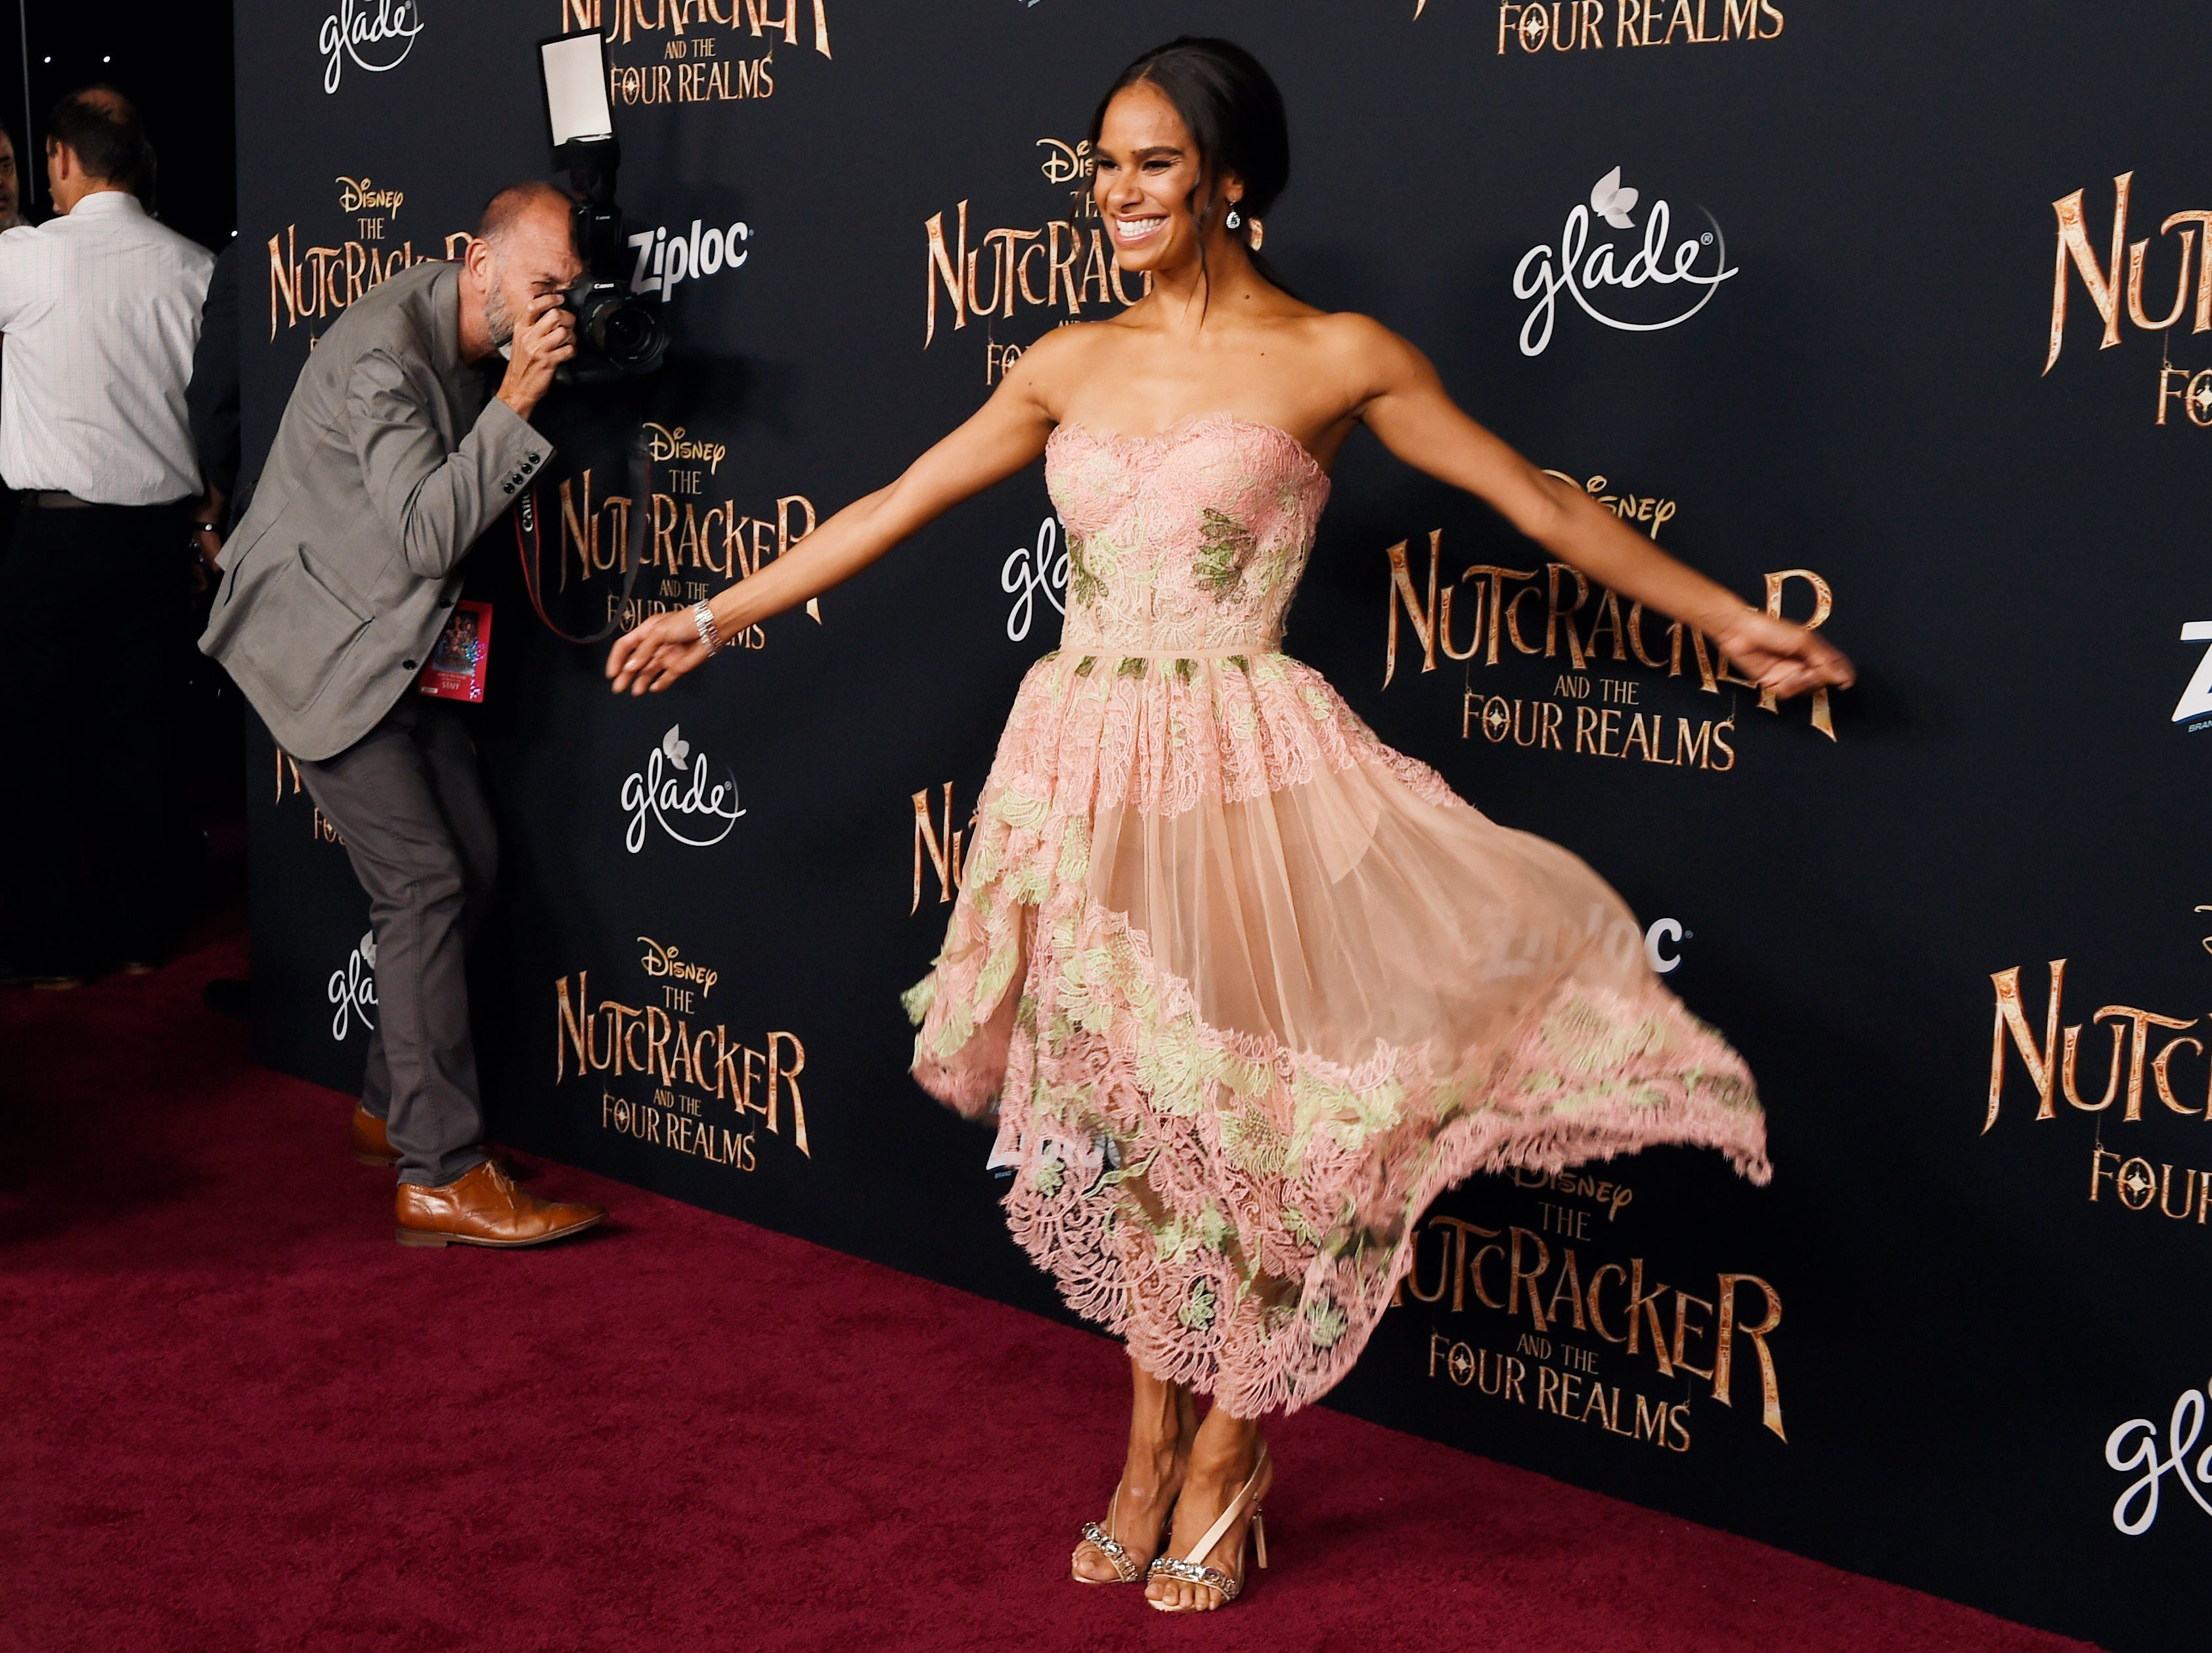 """October 29:Ballet dancer Misty Copeland, a cast member in """"The Nutcracker and the Four Realms,"""" poses at the premiere of the film."""